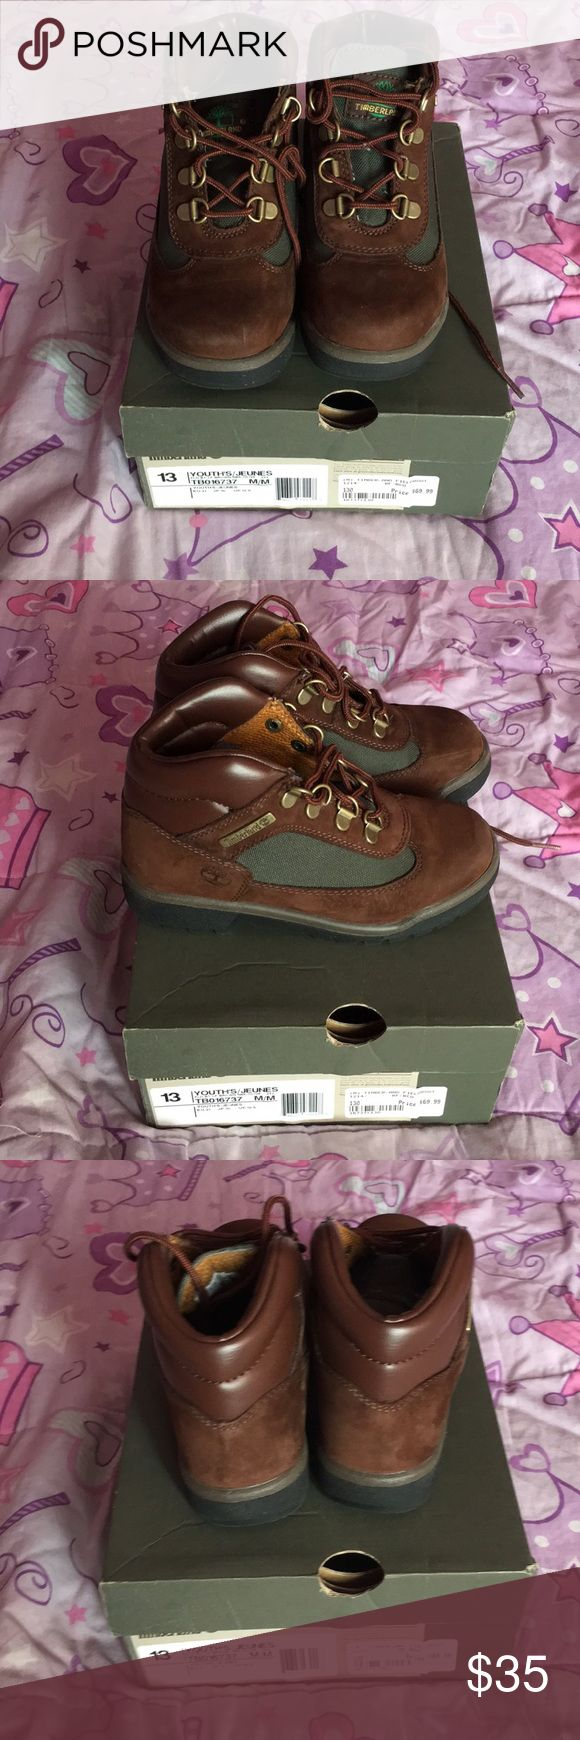 Girls/boys Timberland boots Girls/boys Timberland boots worn 1 time Shoes Boots